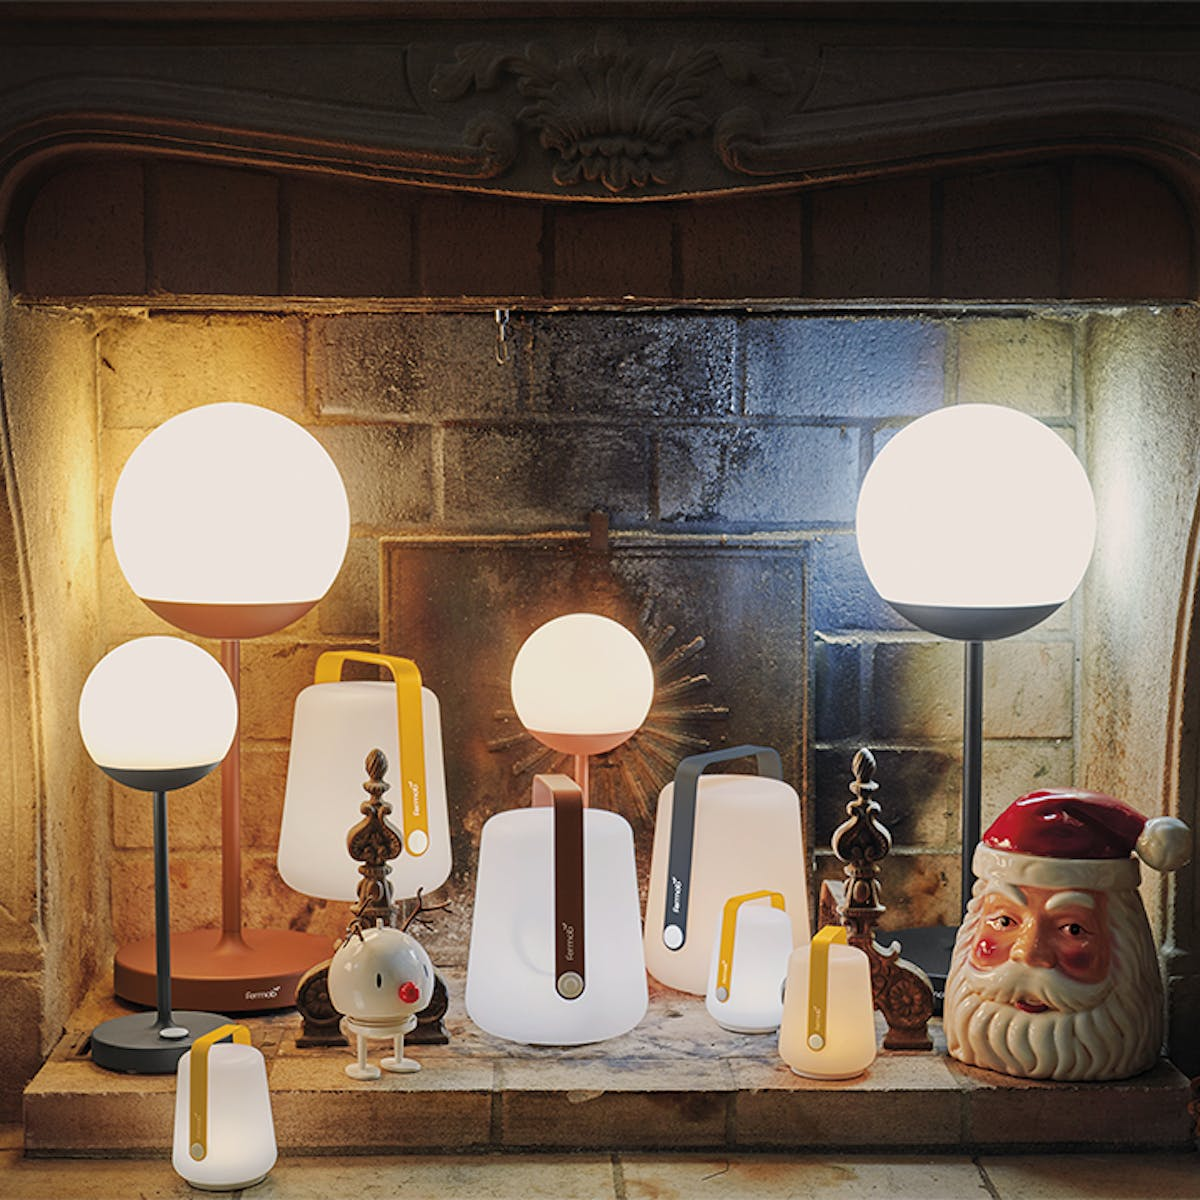 Fermob Balad and Mooon! lamps in Christmas fireplace